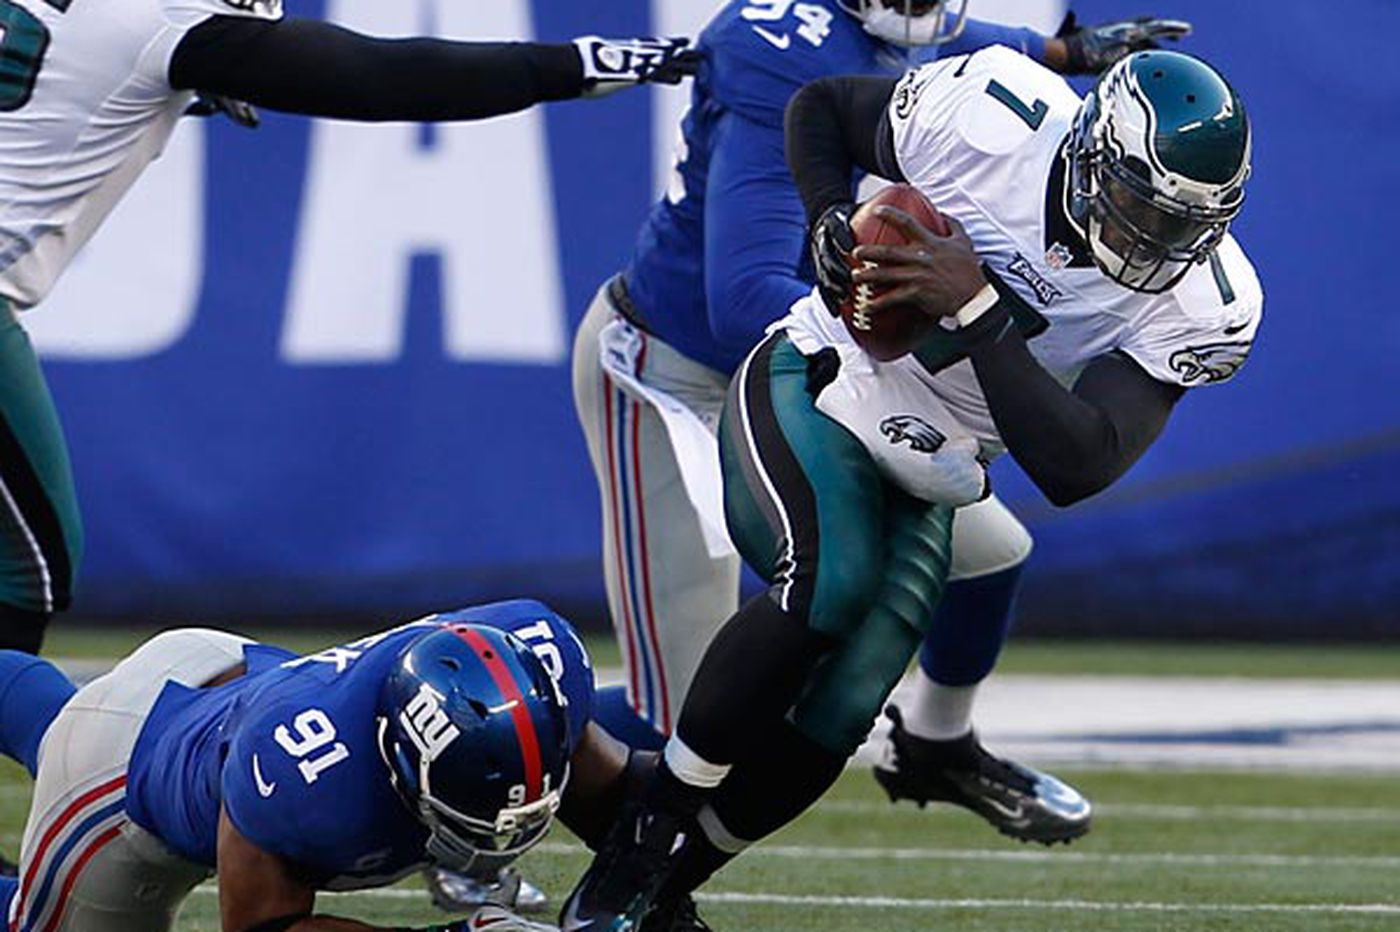 Philadelphia Eagles get throttled by New York Giants in Andy Reid's final game